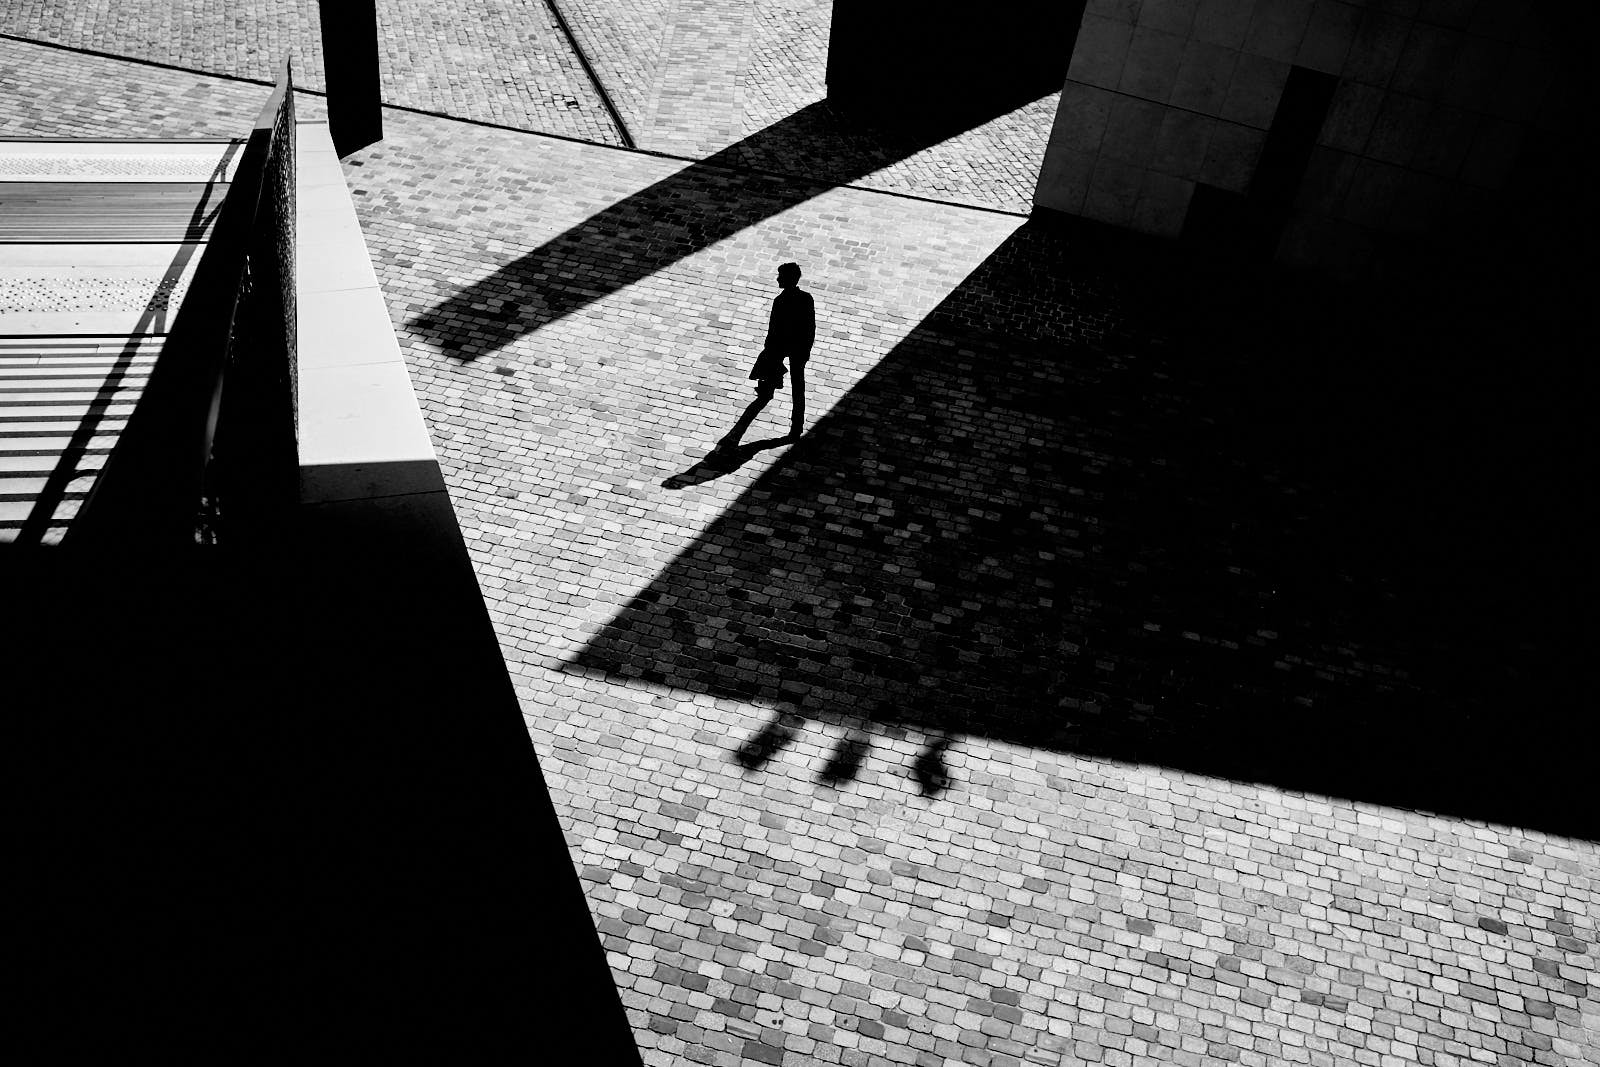 street photography silhouette shadows and graphics